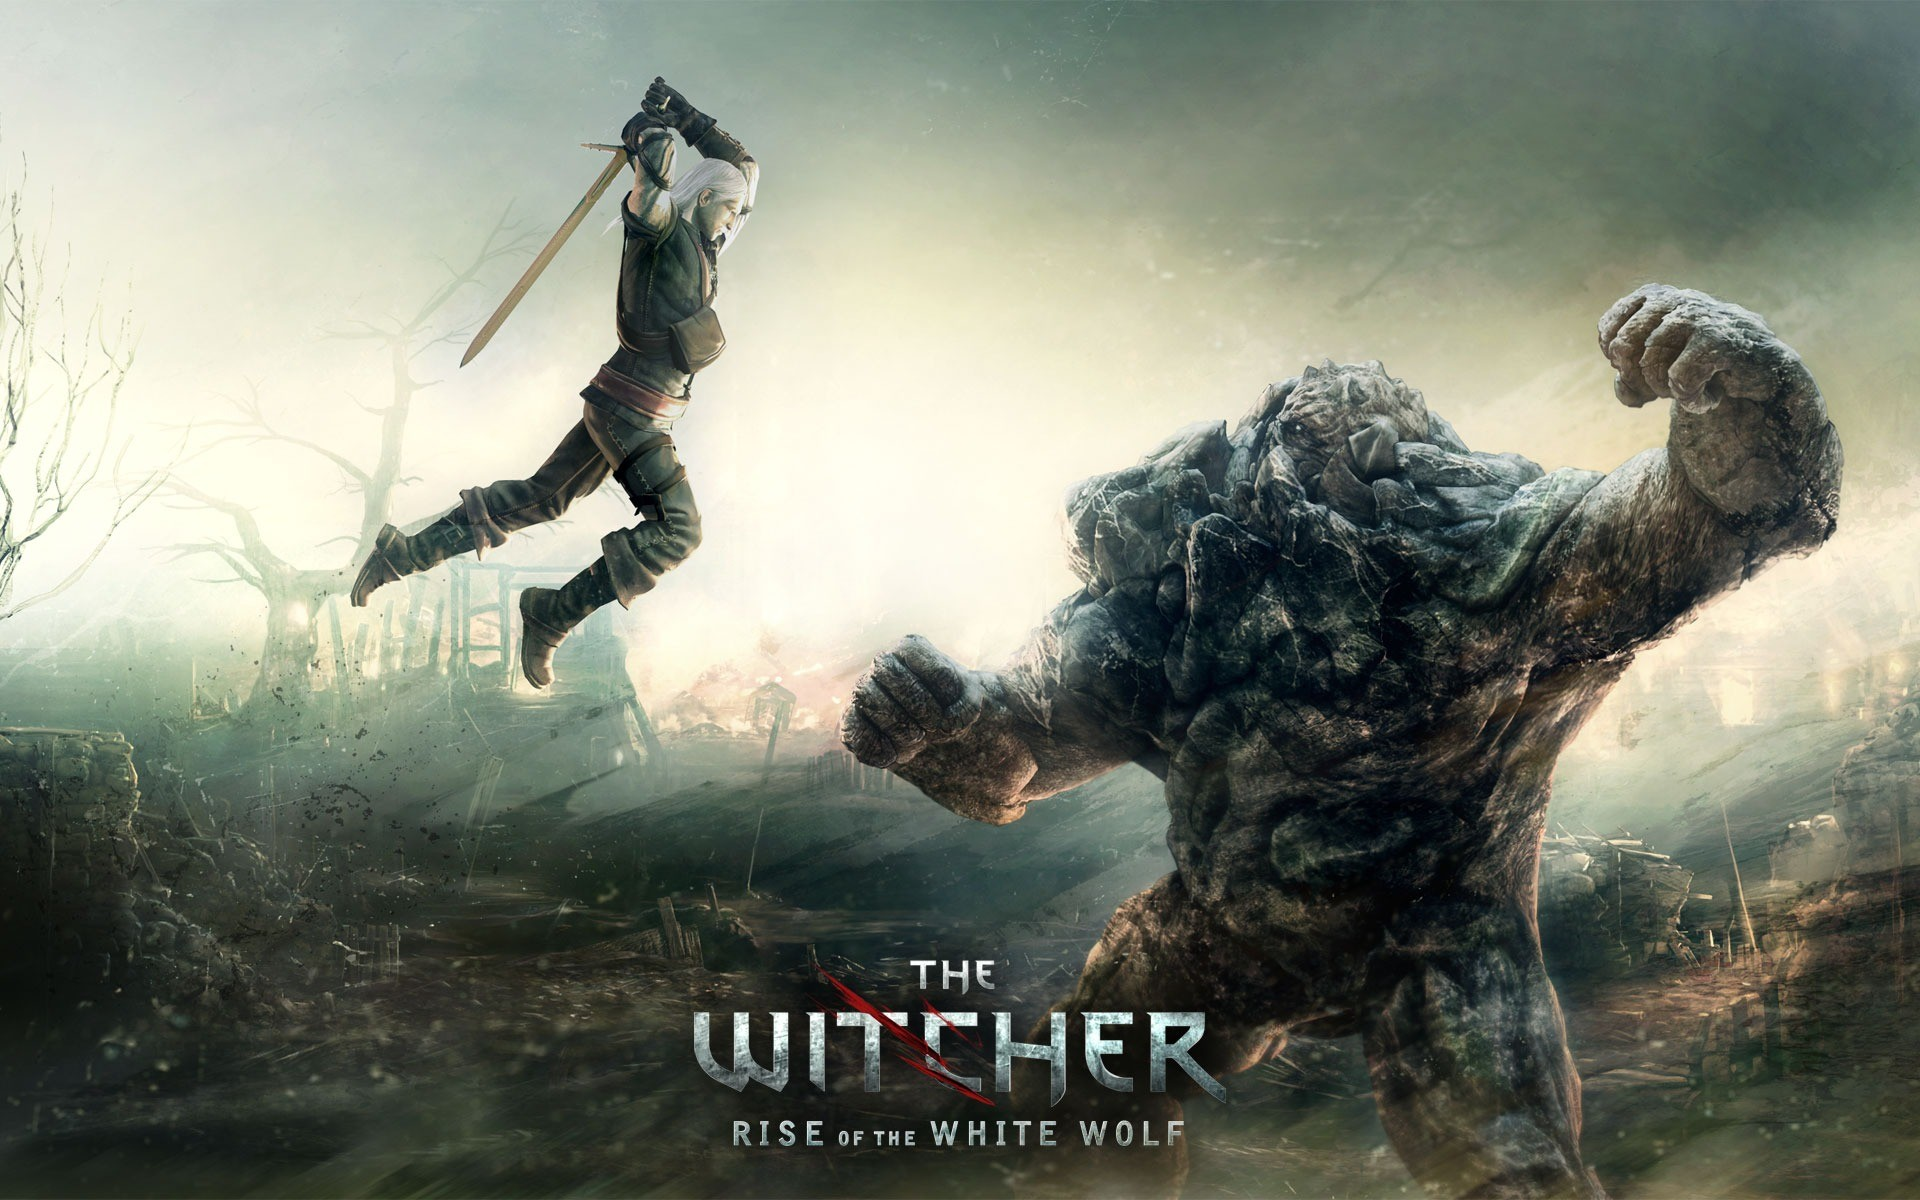 1920x1200 The Witcher Rise of the White Wolf Wallpaper The Witcher Games Wallpapers